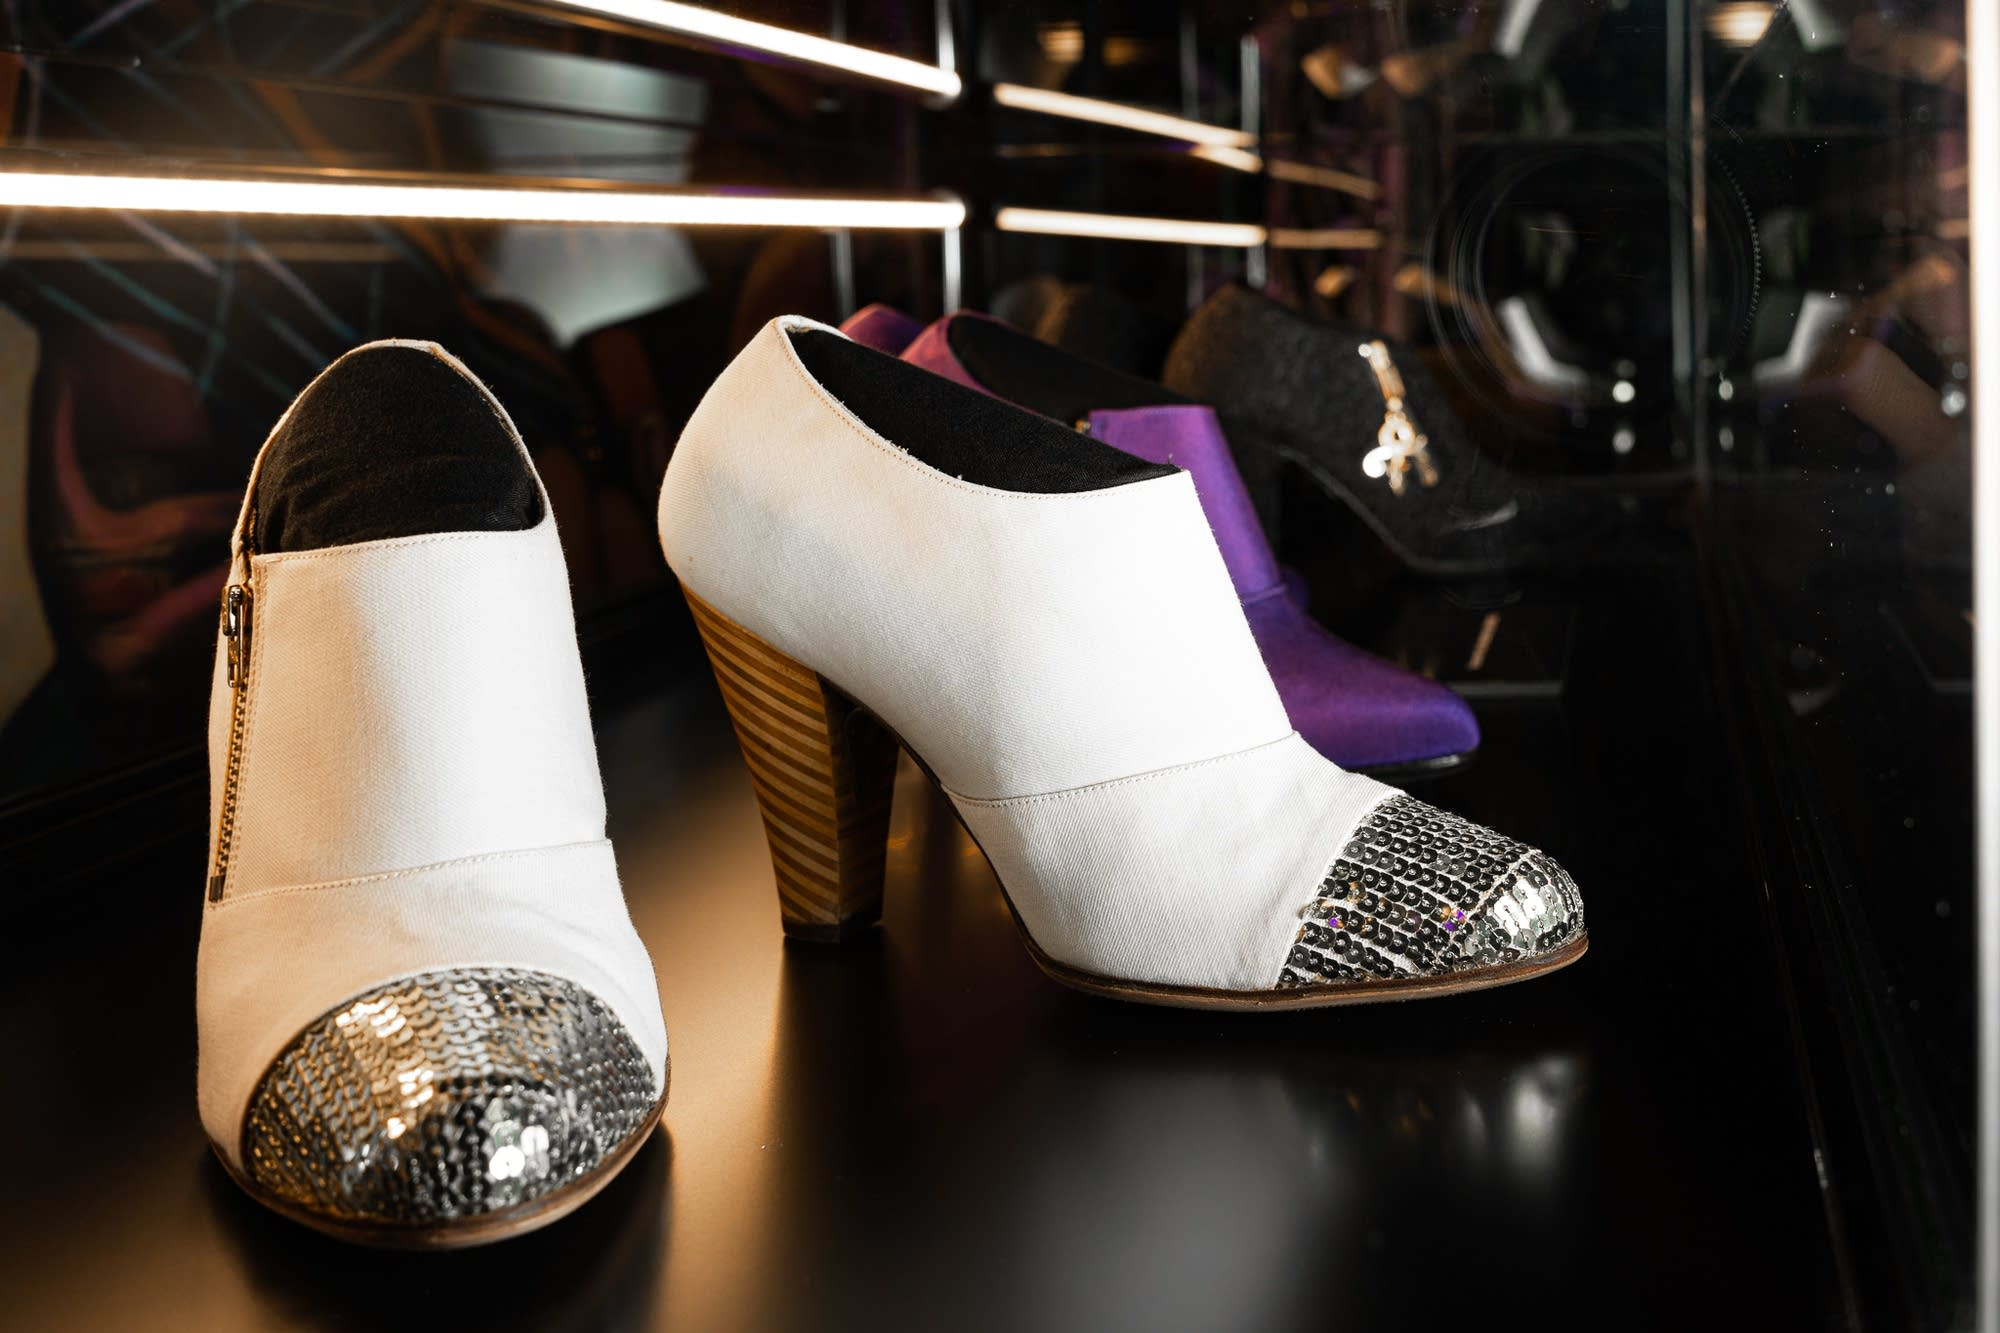 The Beautiful Ones shoe collection at Paisley Park